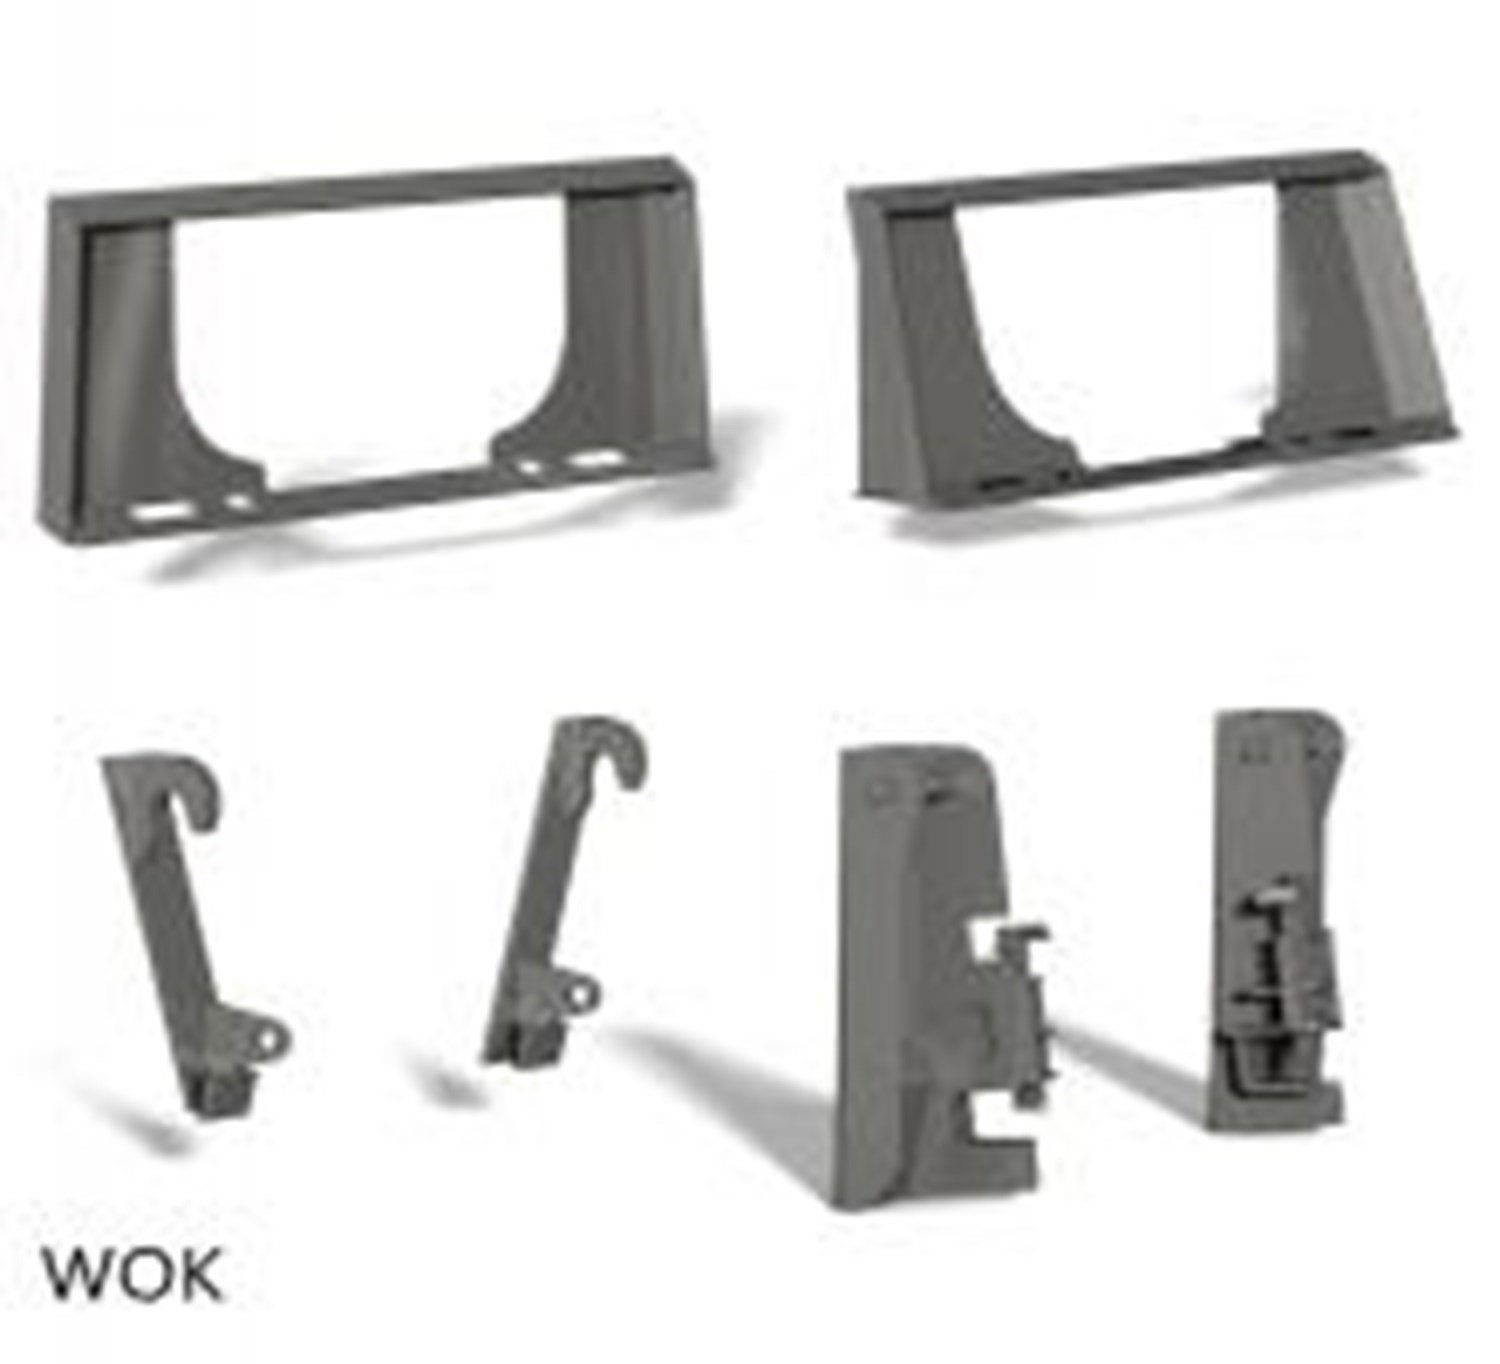 HLA ATTACHMENTS WOKBO500K